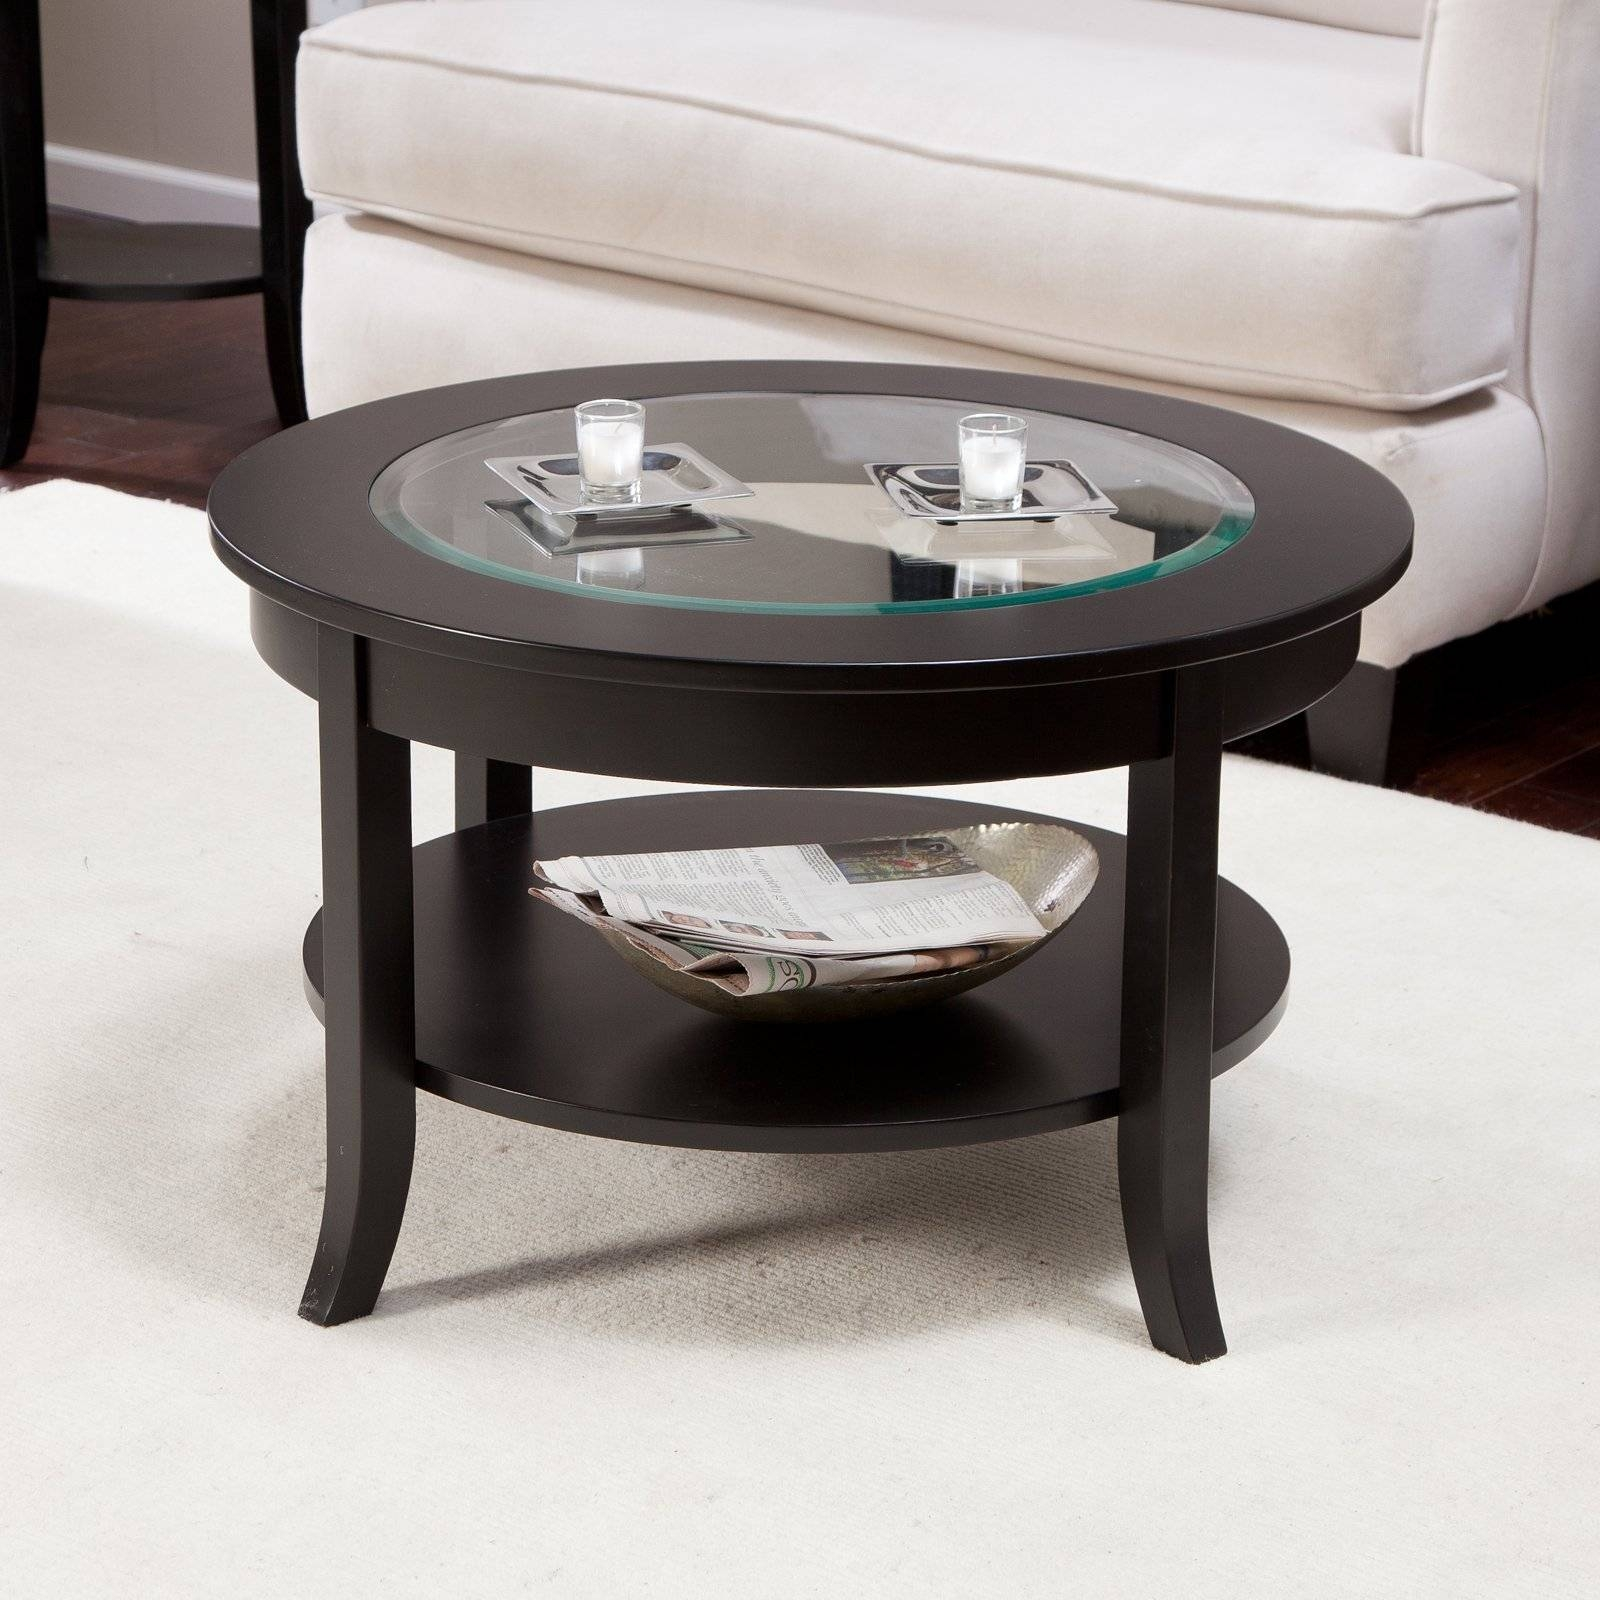 Furniture: Modern And Contemporary Design Of Espresso Coffee Table pertaining to Small Glass Coffee Tables (Image 9 of 15)